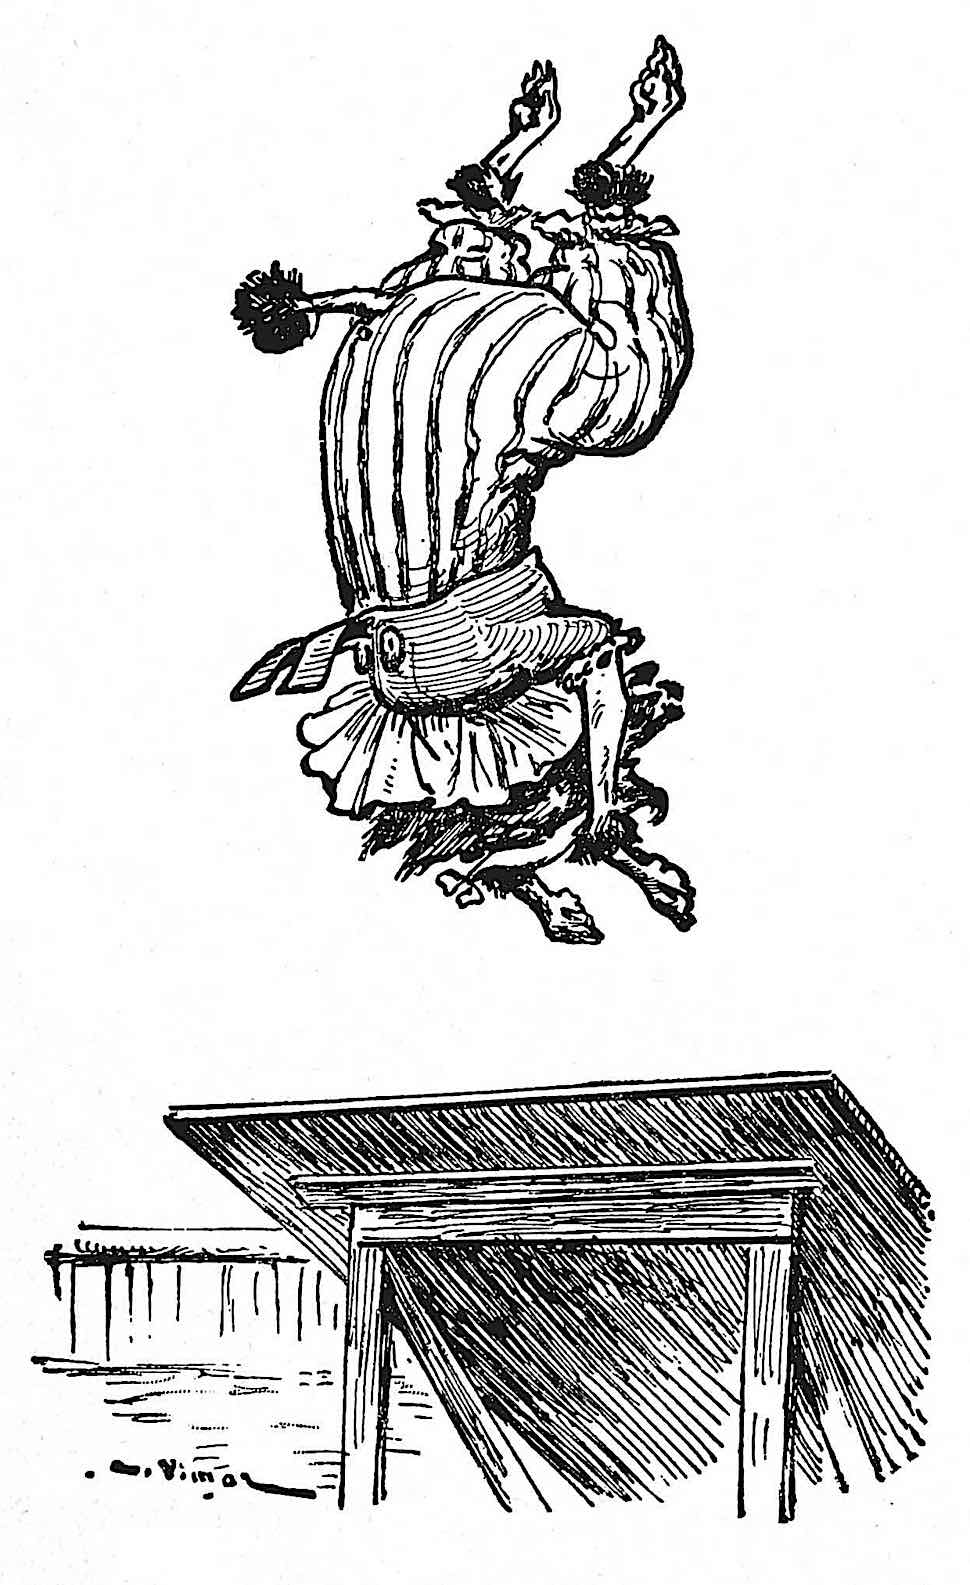 an illustration by Auguste Vimar, a circus dog tumbler